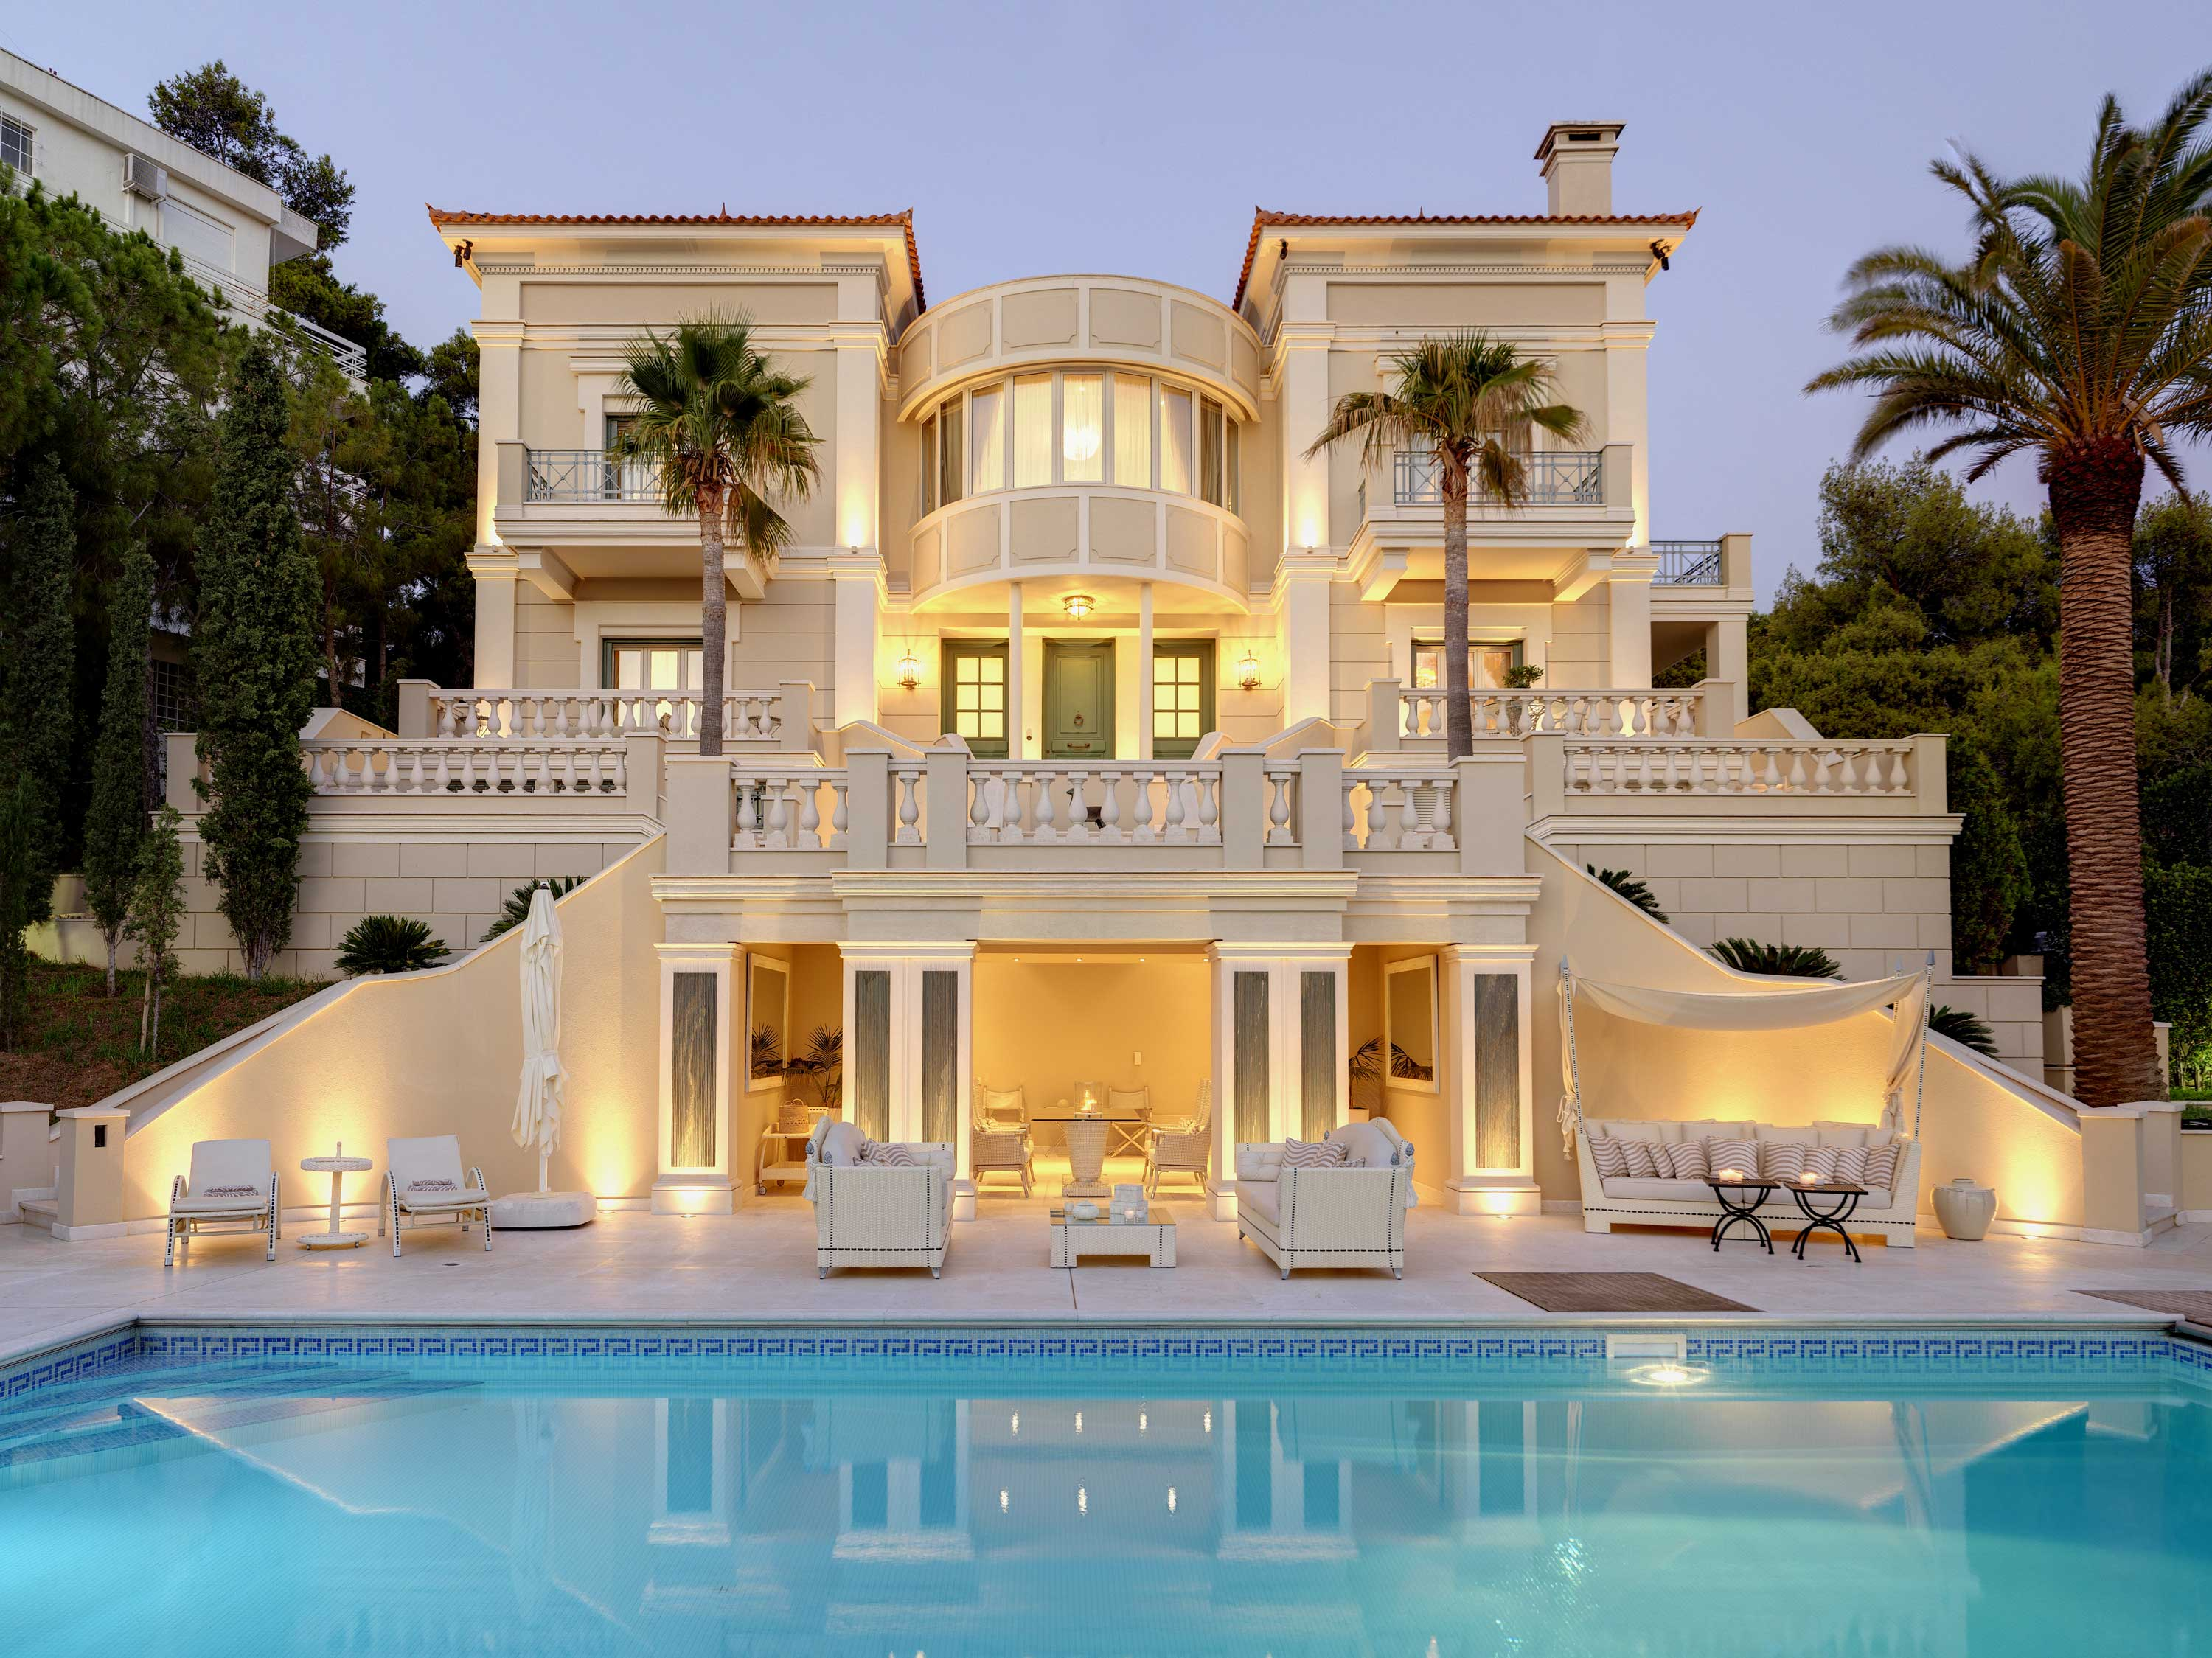 This estate on the Athenian Riviera exudes Old World glamour and style. The residence has been exquisitely illuminated both inside and out.